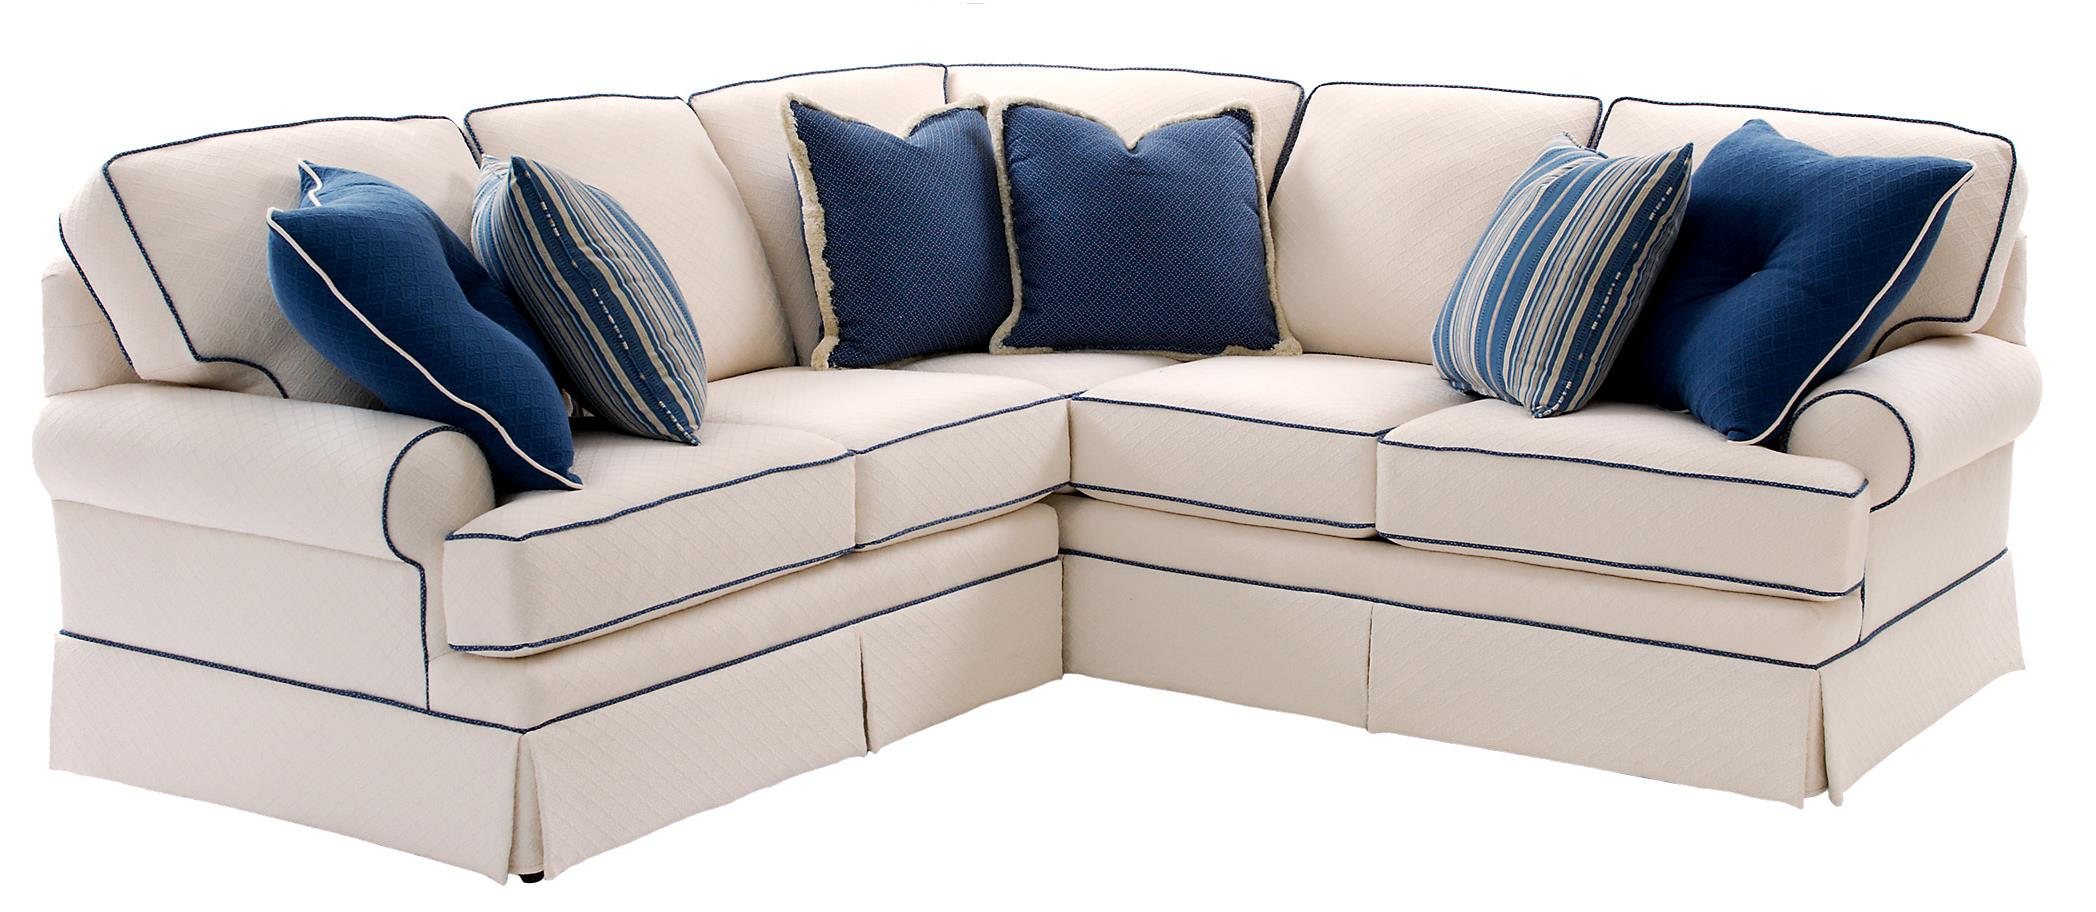 Exceptionnel Sectional Sofa With Rolled Arms And Skirt